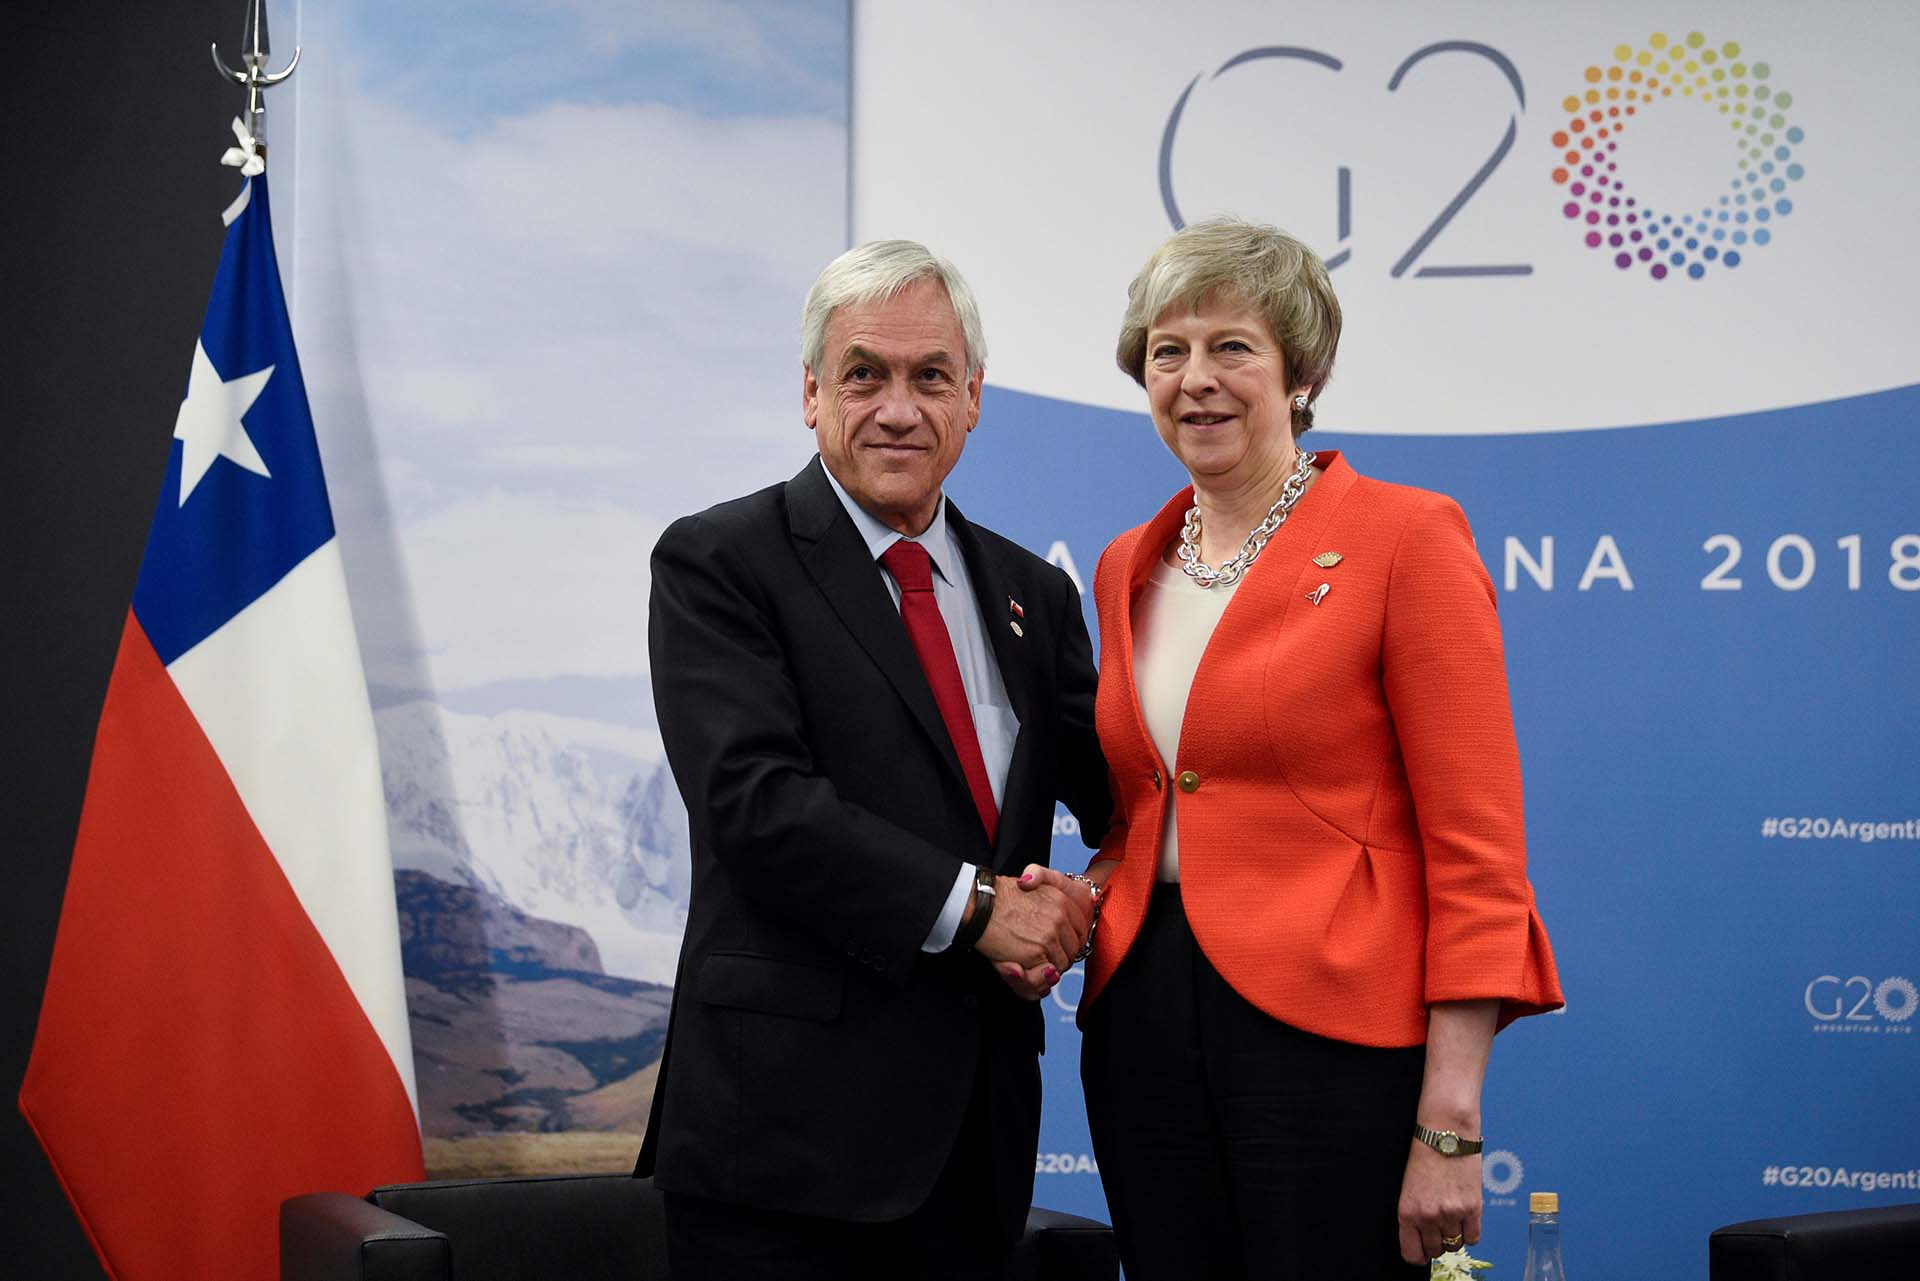 Theresa May y Sebastian Piñera